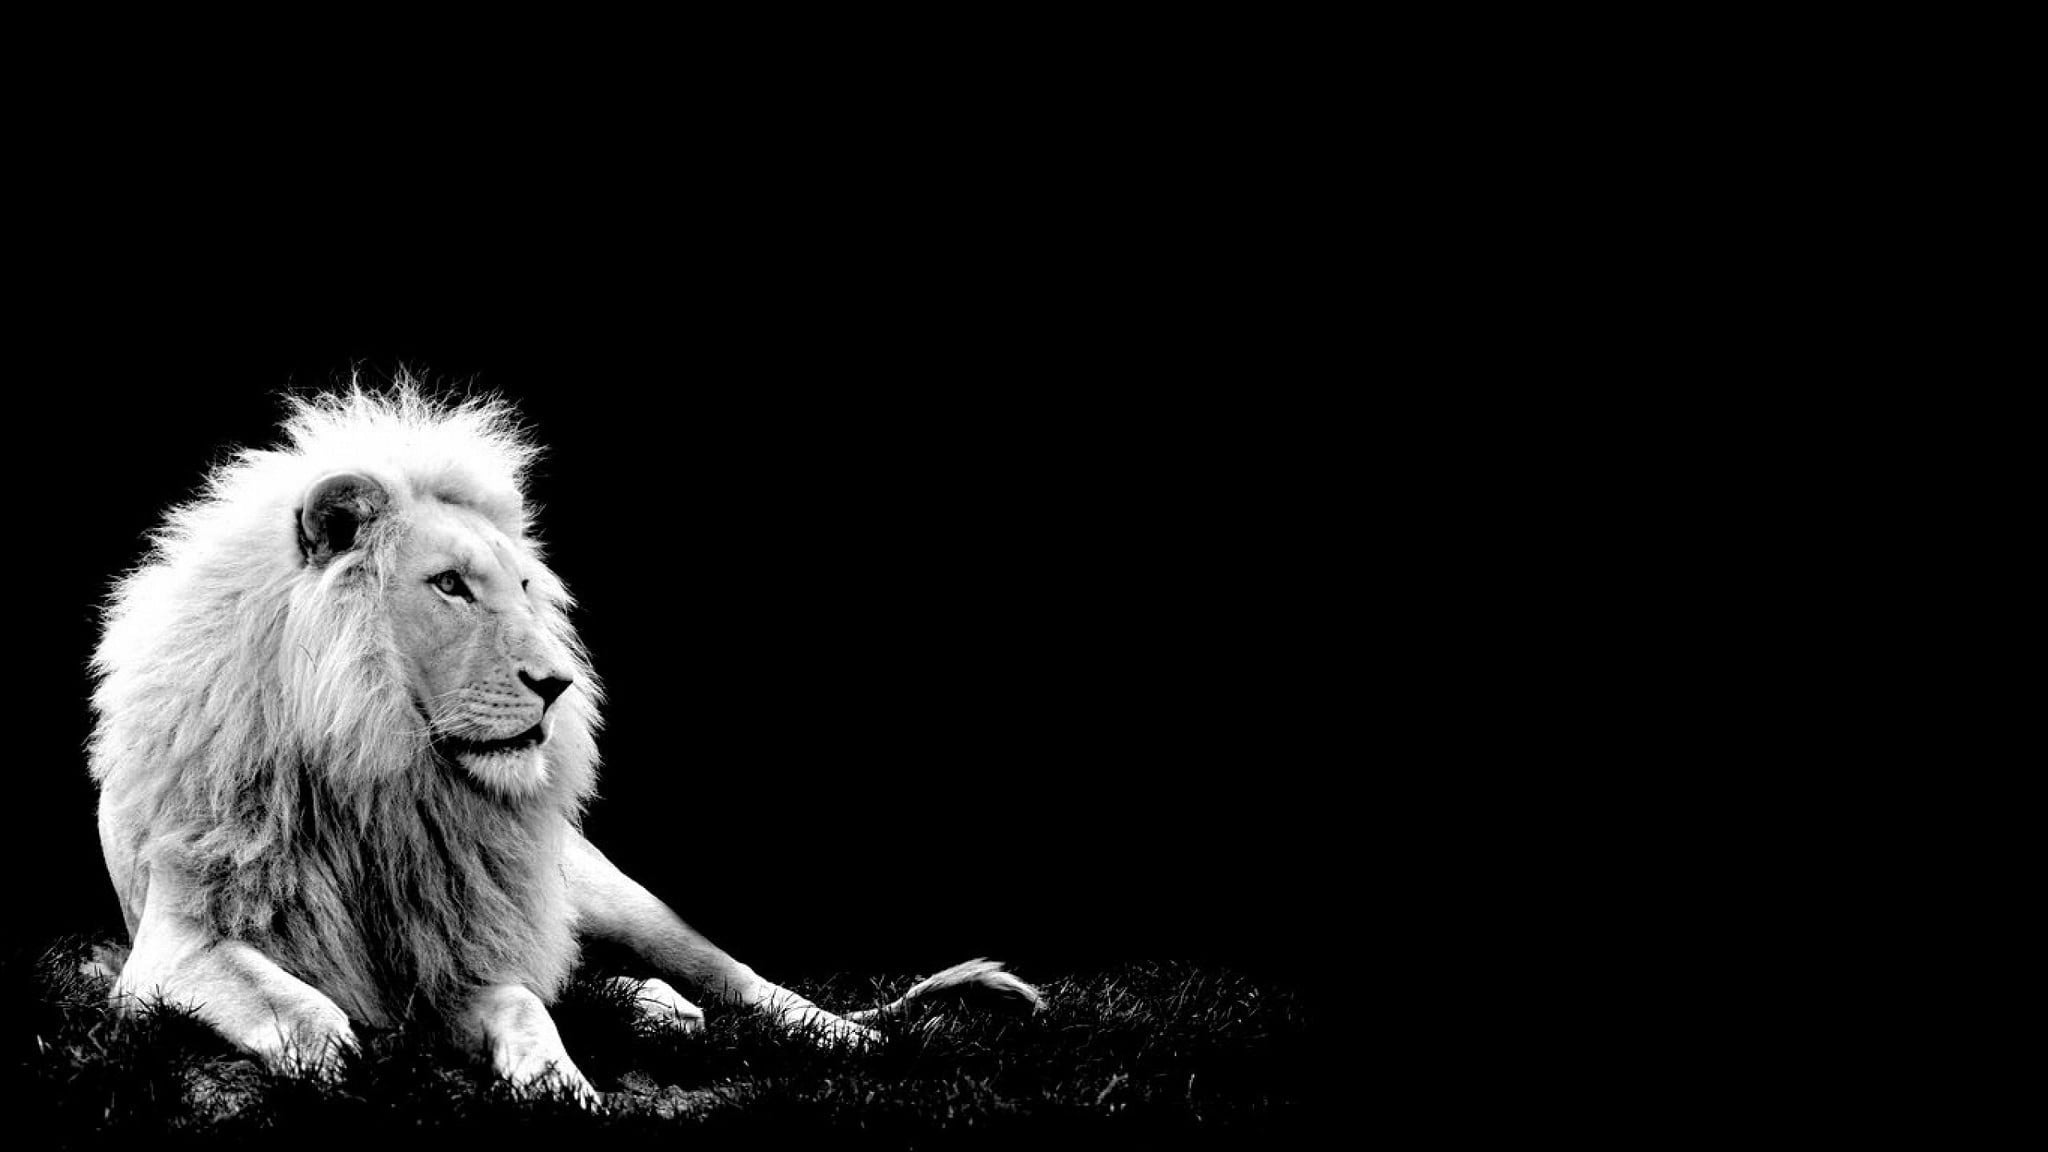 21 White Lion wallpapers HD High Quality 2048x1152